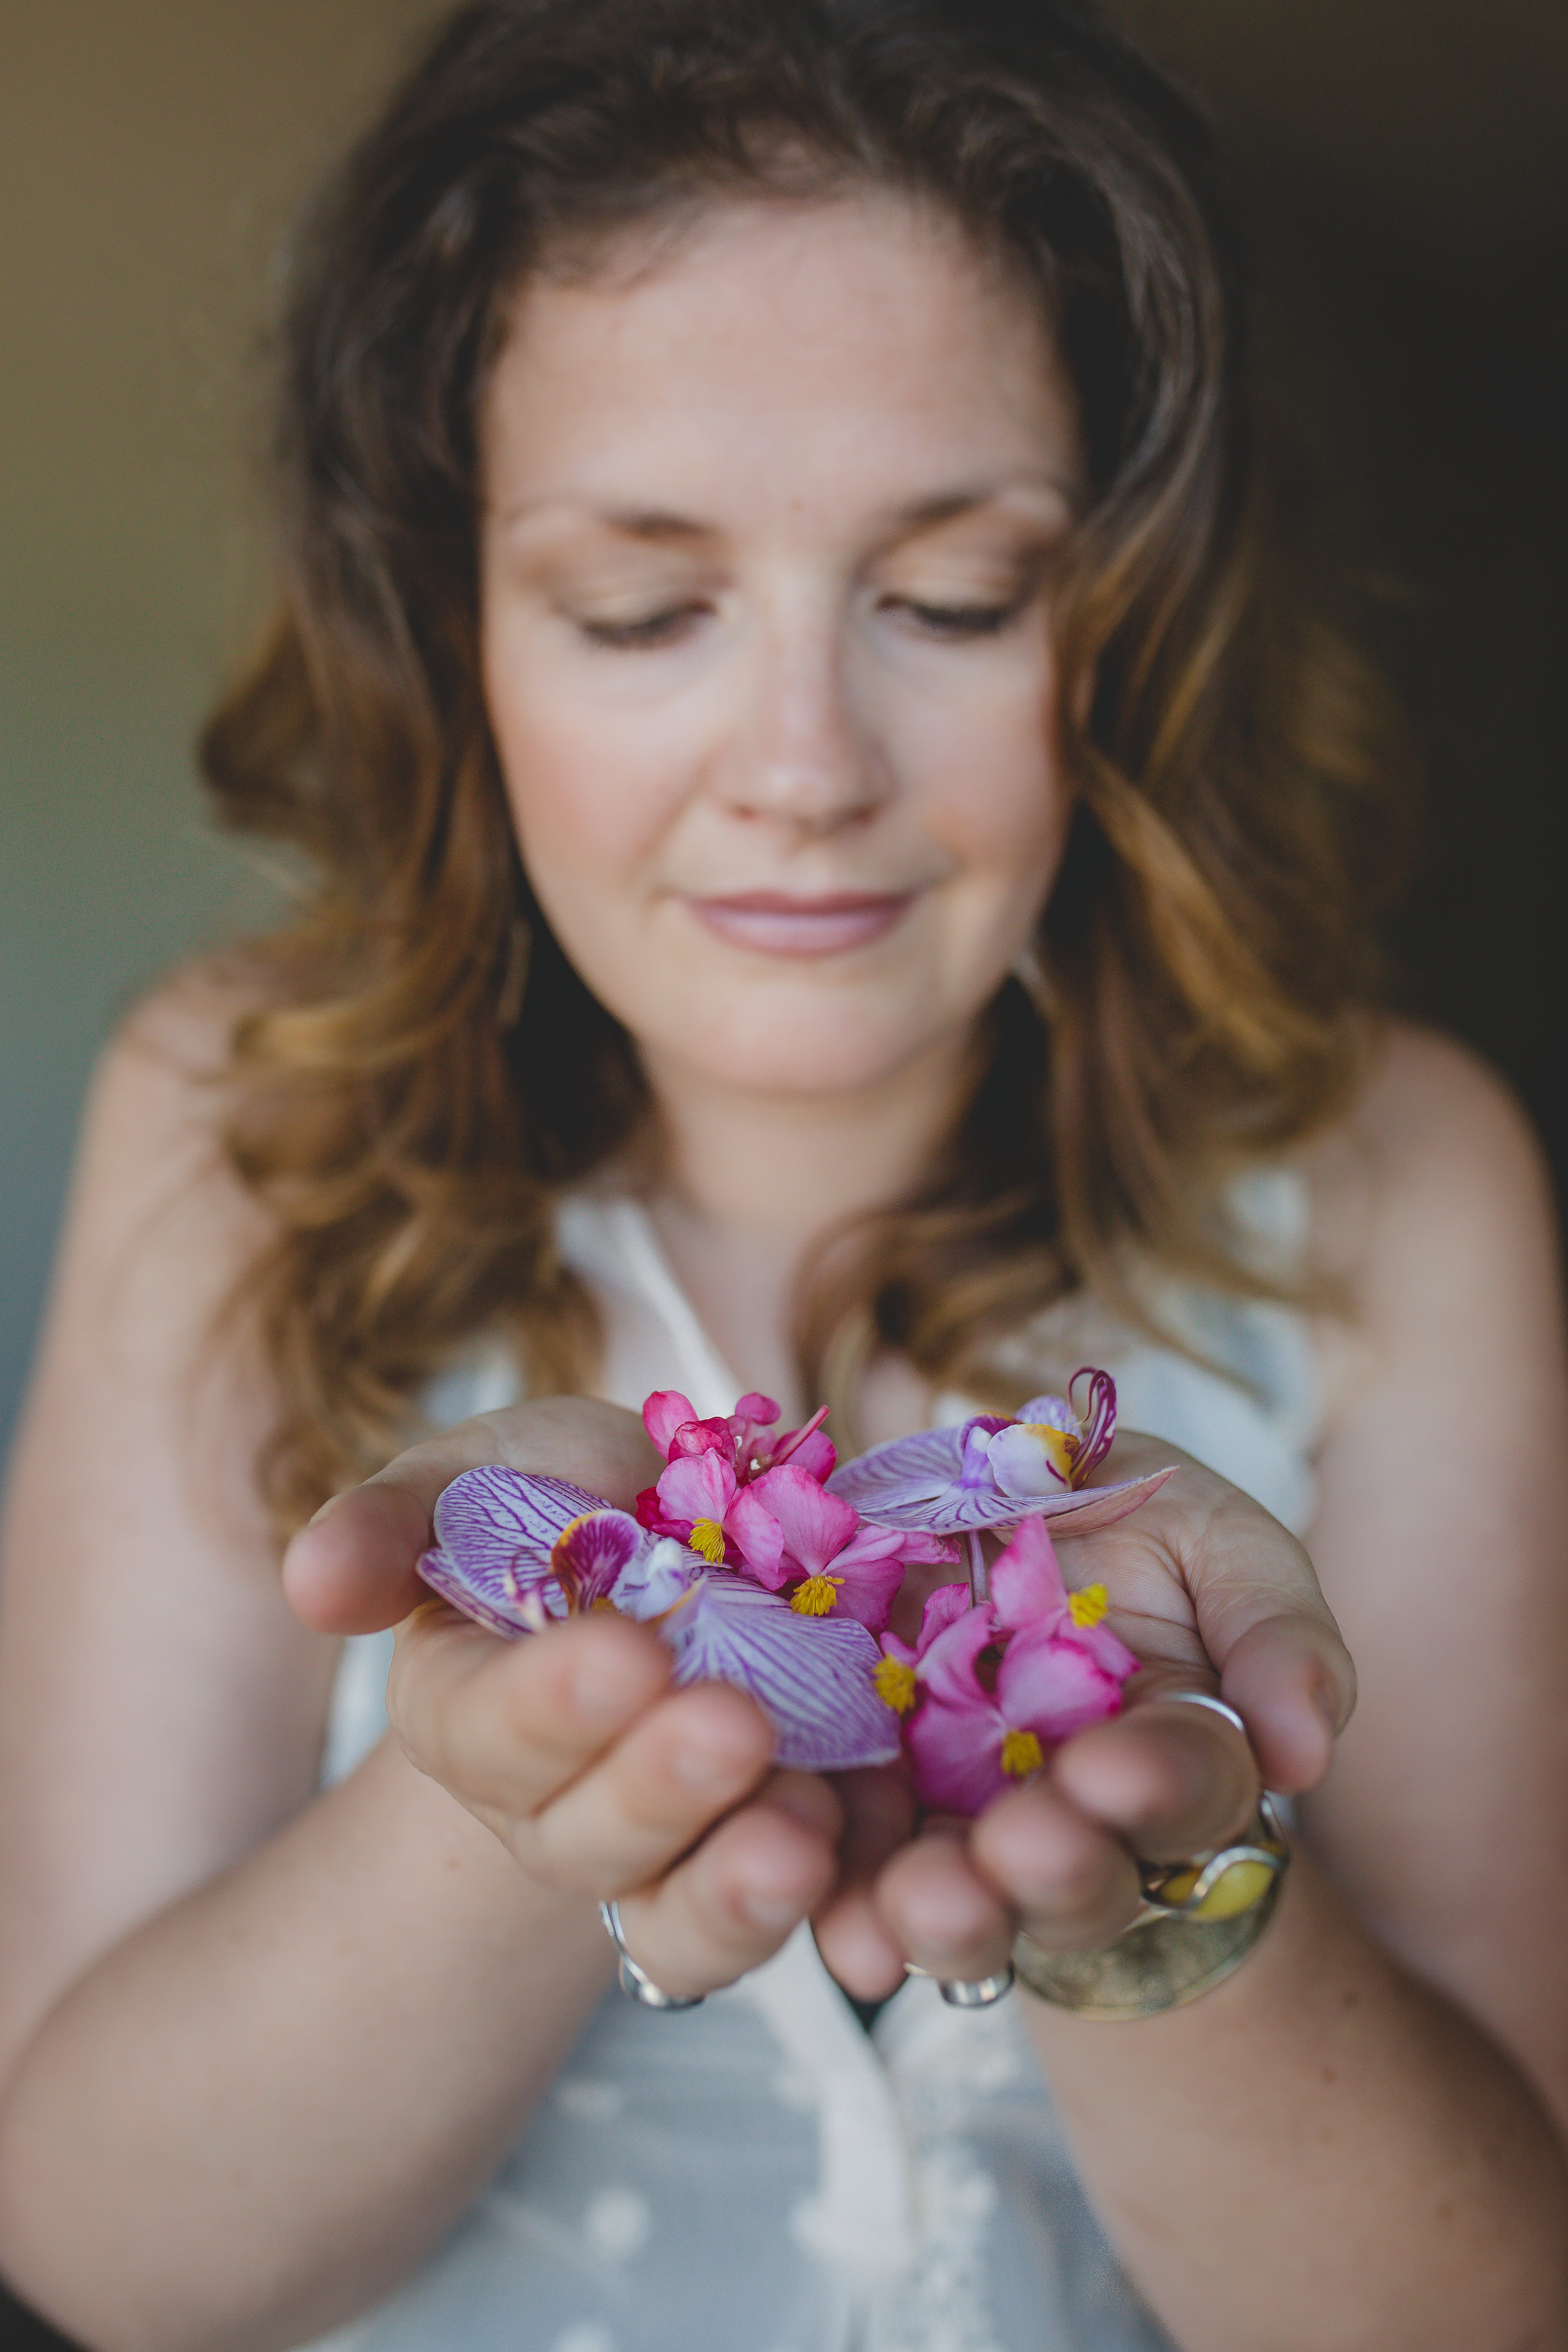 Aromatherapy with Essential Oils: Debunking Myths